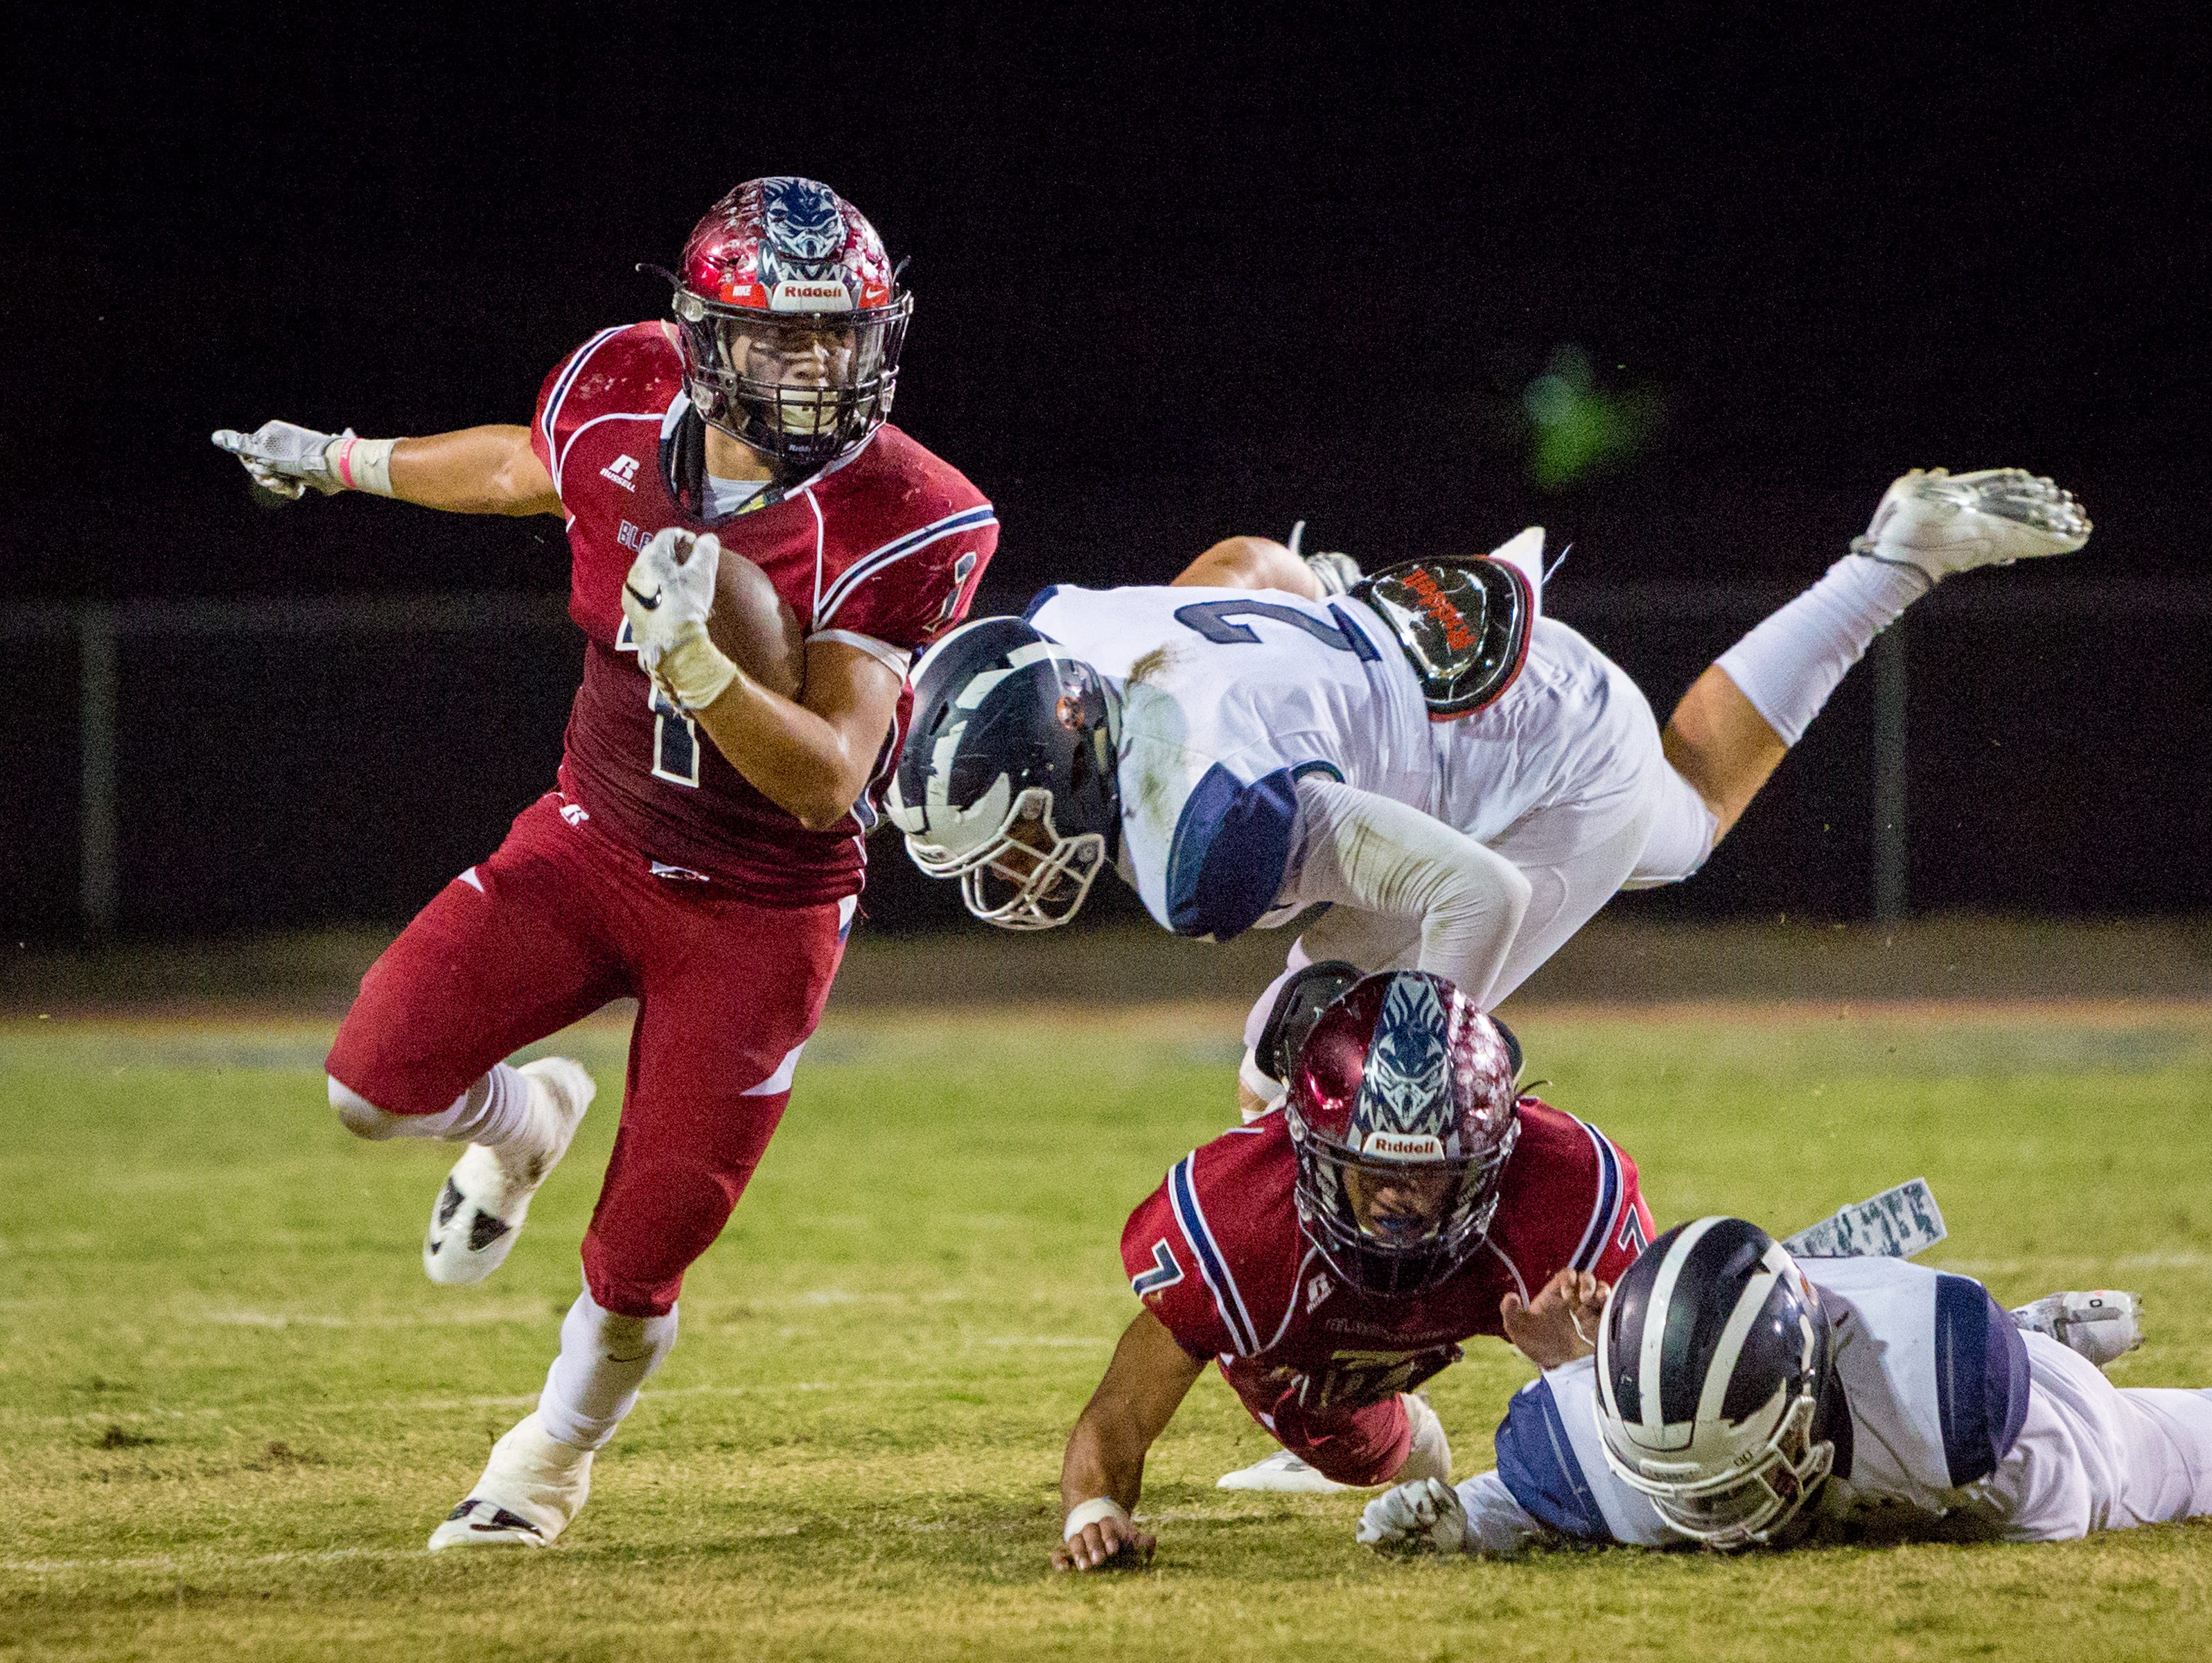 Benji Cordova avoids getting tackled for a gain of eight yards in the first half against Redlands.